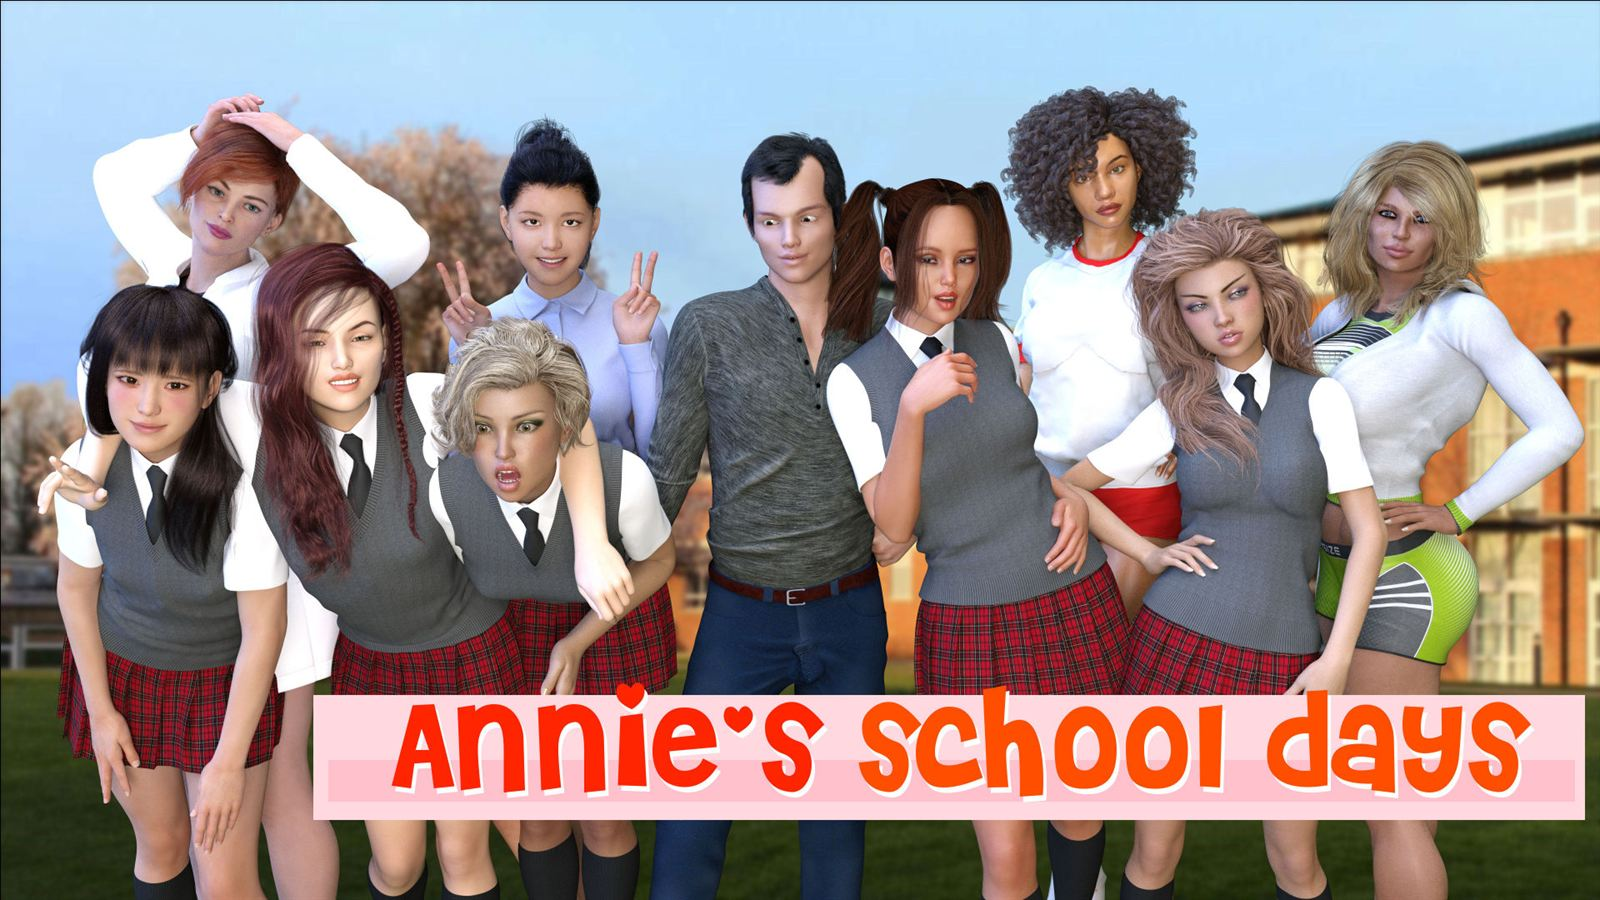 Annie's School Days Adult Game Cover